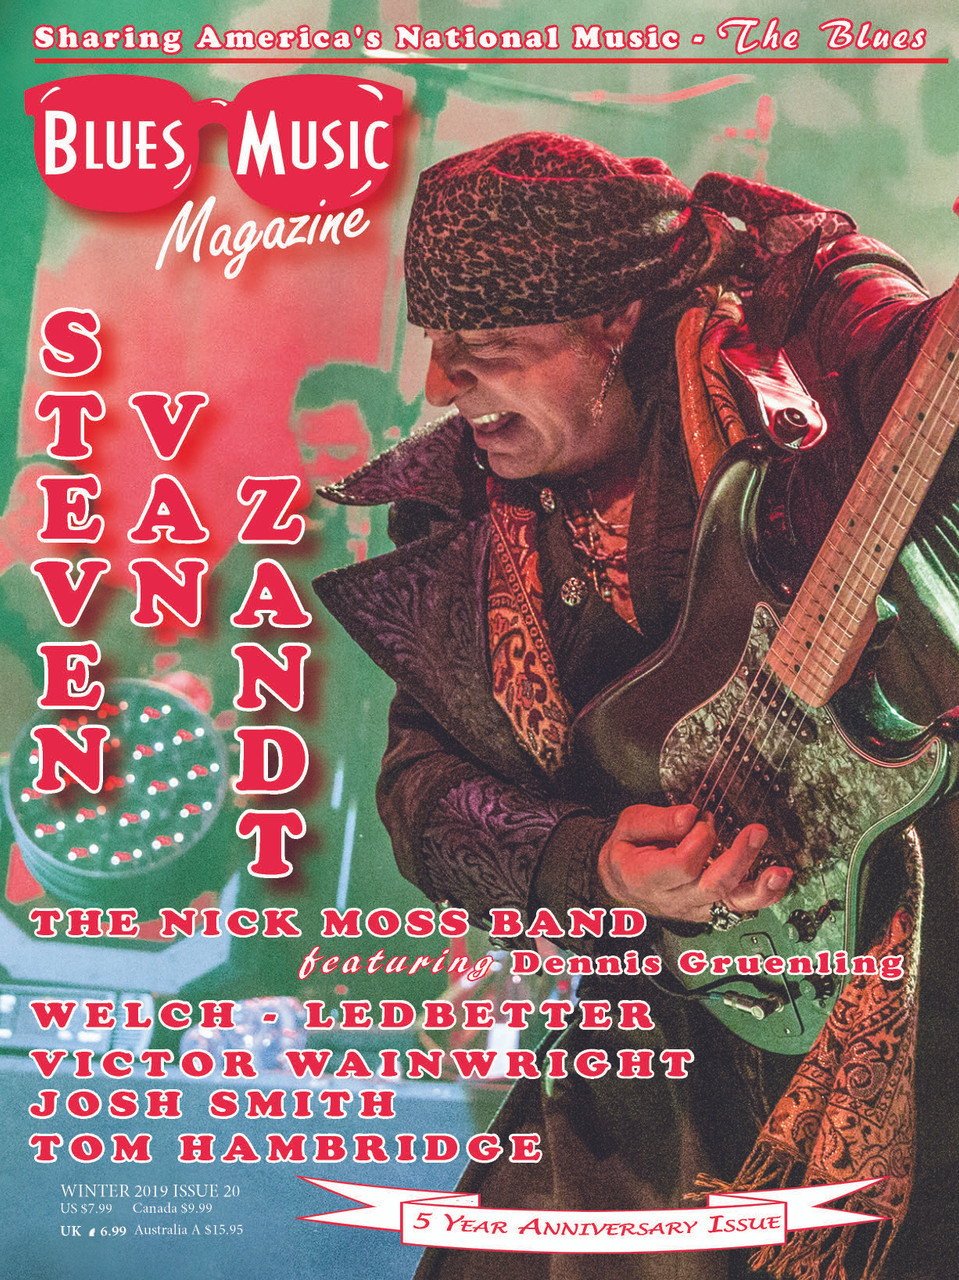 USA ONLY - THE WINTER ISSUE - JANUARY 2019 - SINGLE COPY & FREE SHIPPING